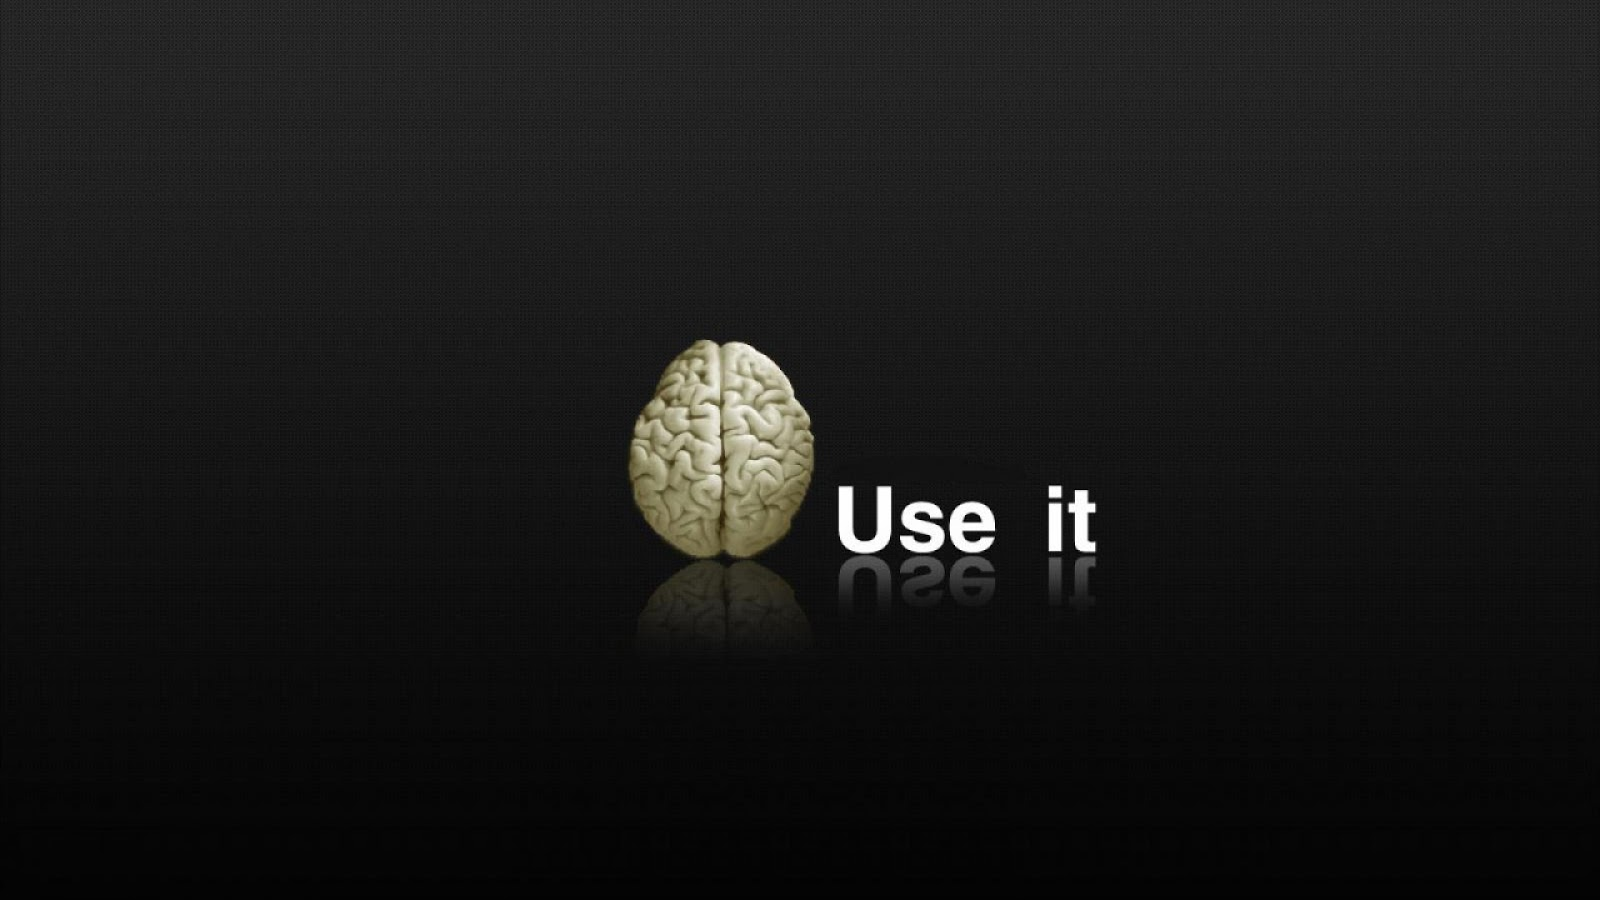 Brain Use it Funny Wallpapers 1080p